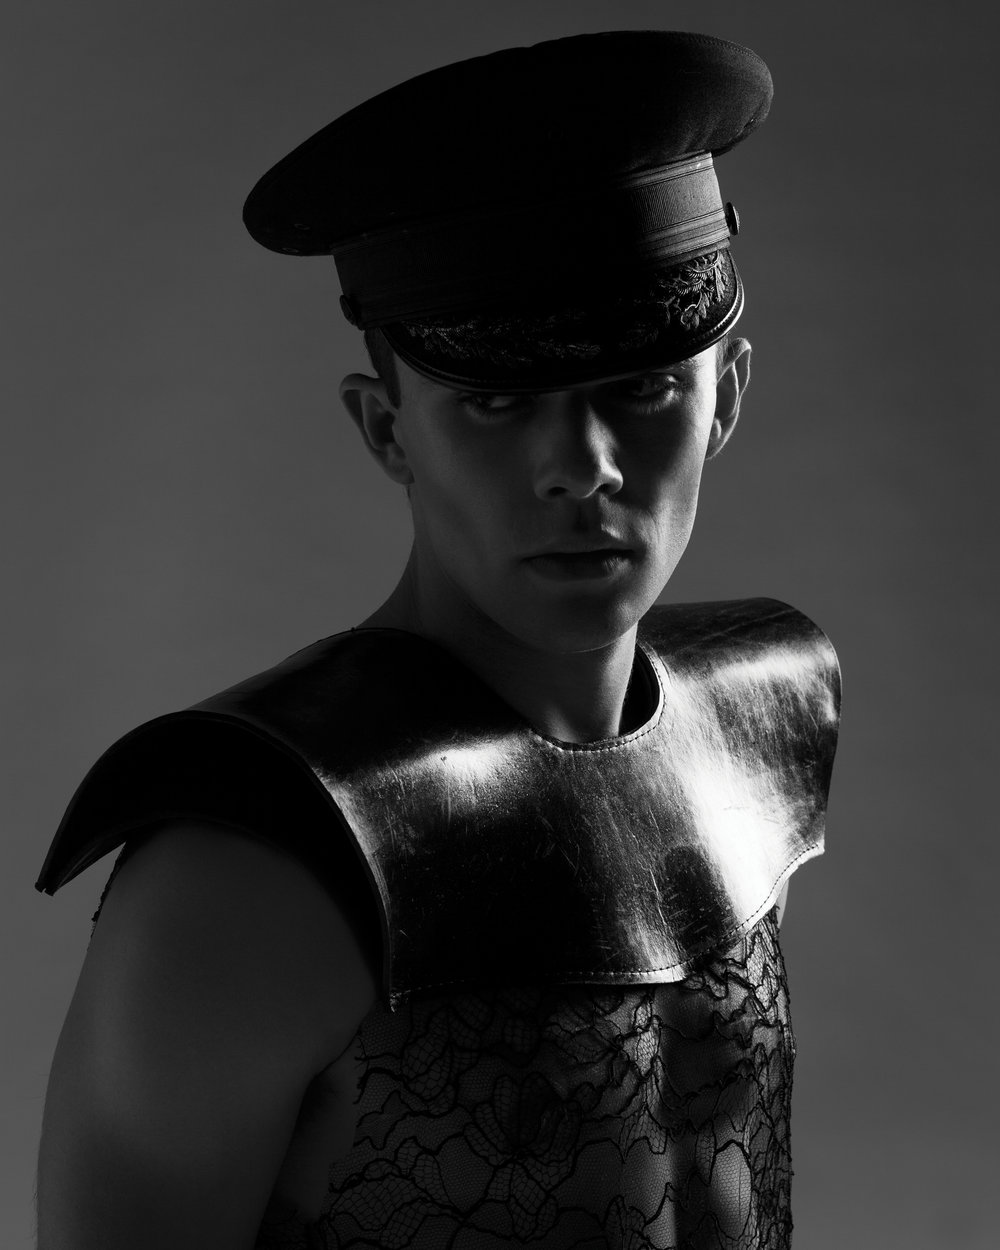 Leather Shoulders by Oshrat Ben-Issac, BFA Fashion Design. Sophie Hallette lace tank, stylist's own. Hat, stylist's own.